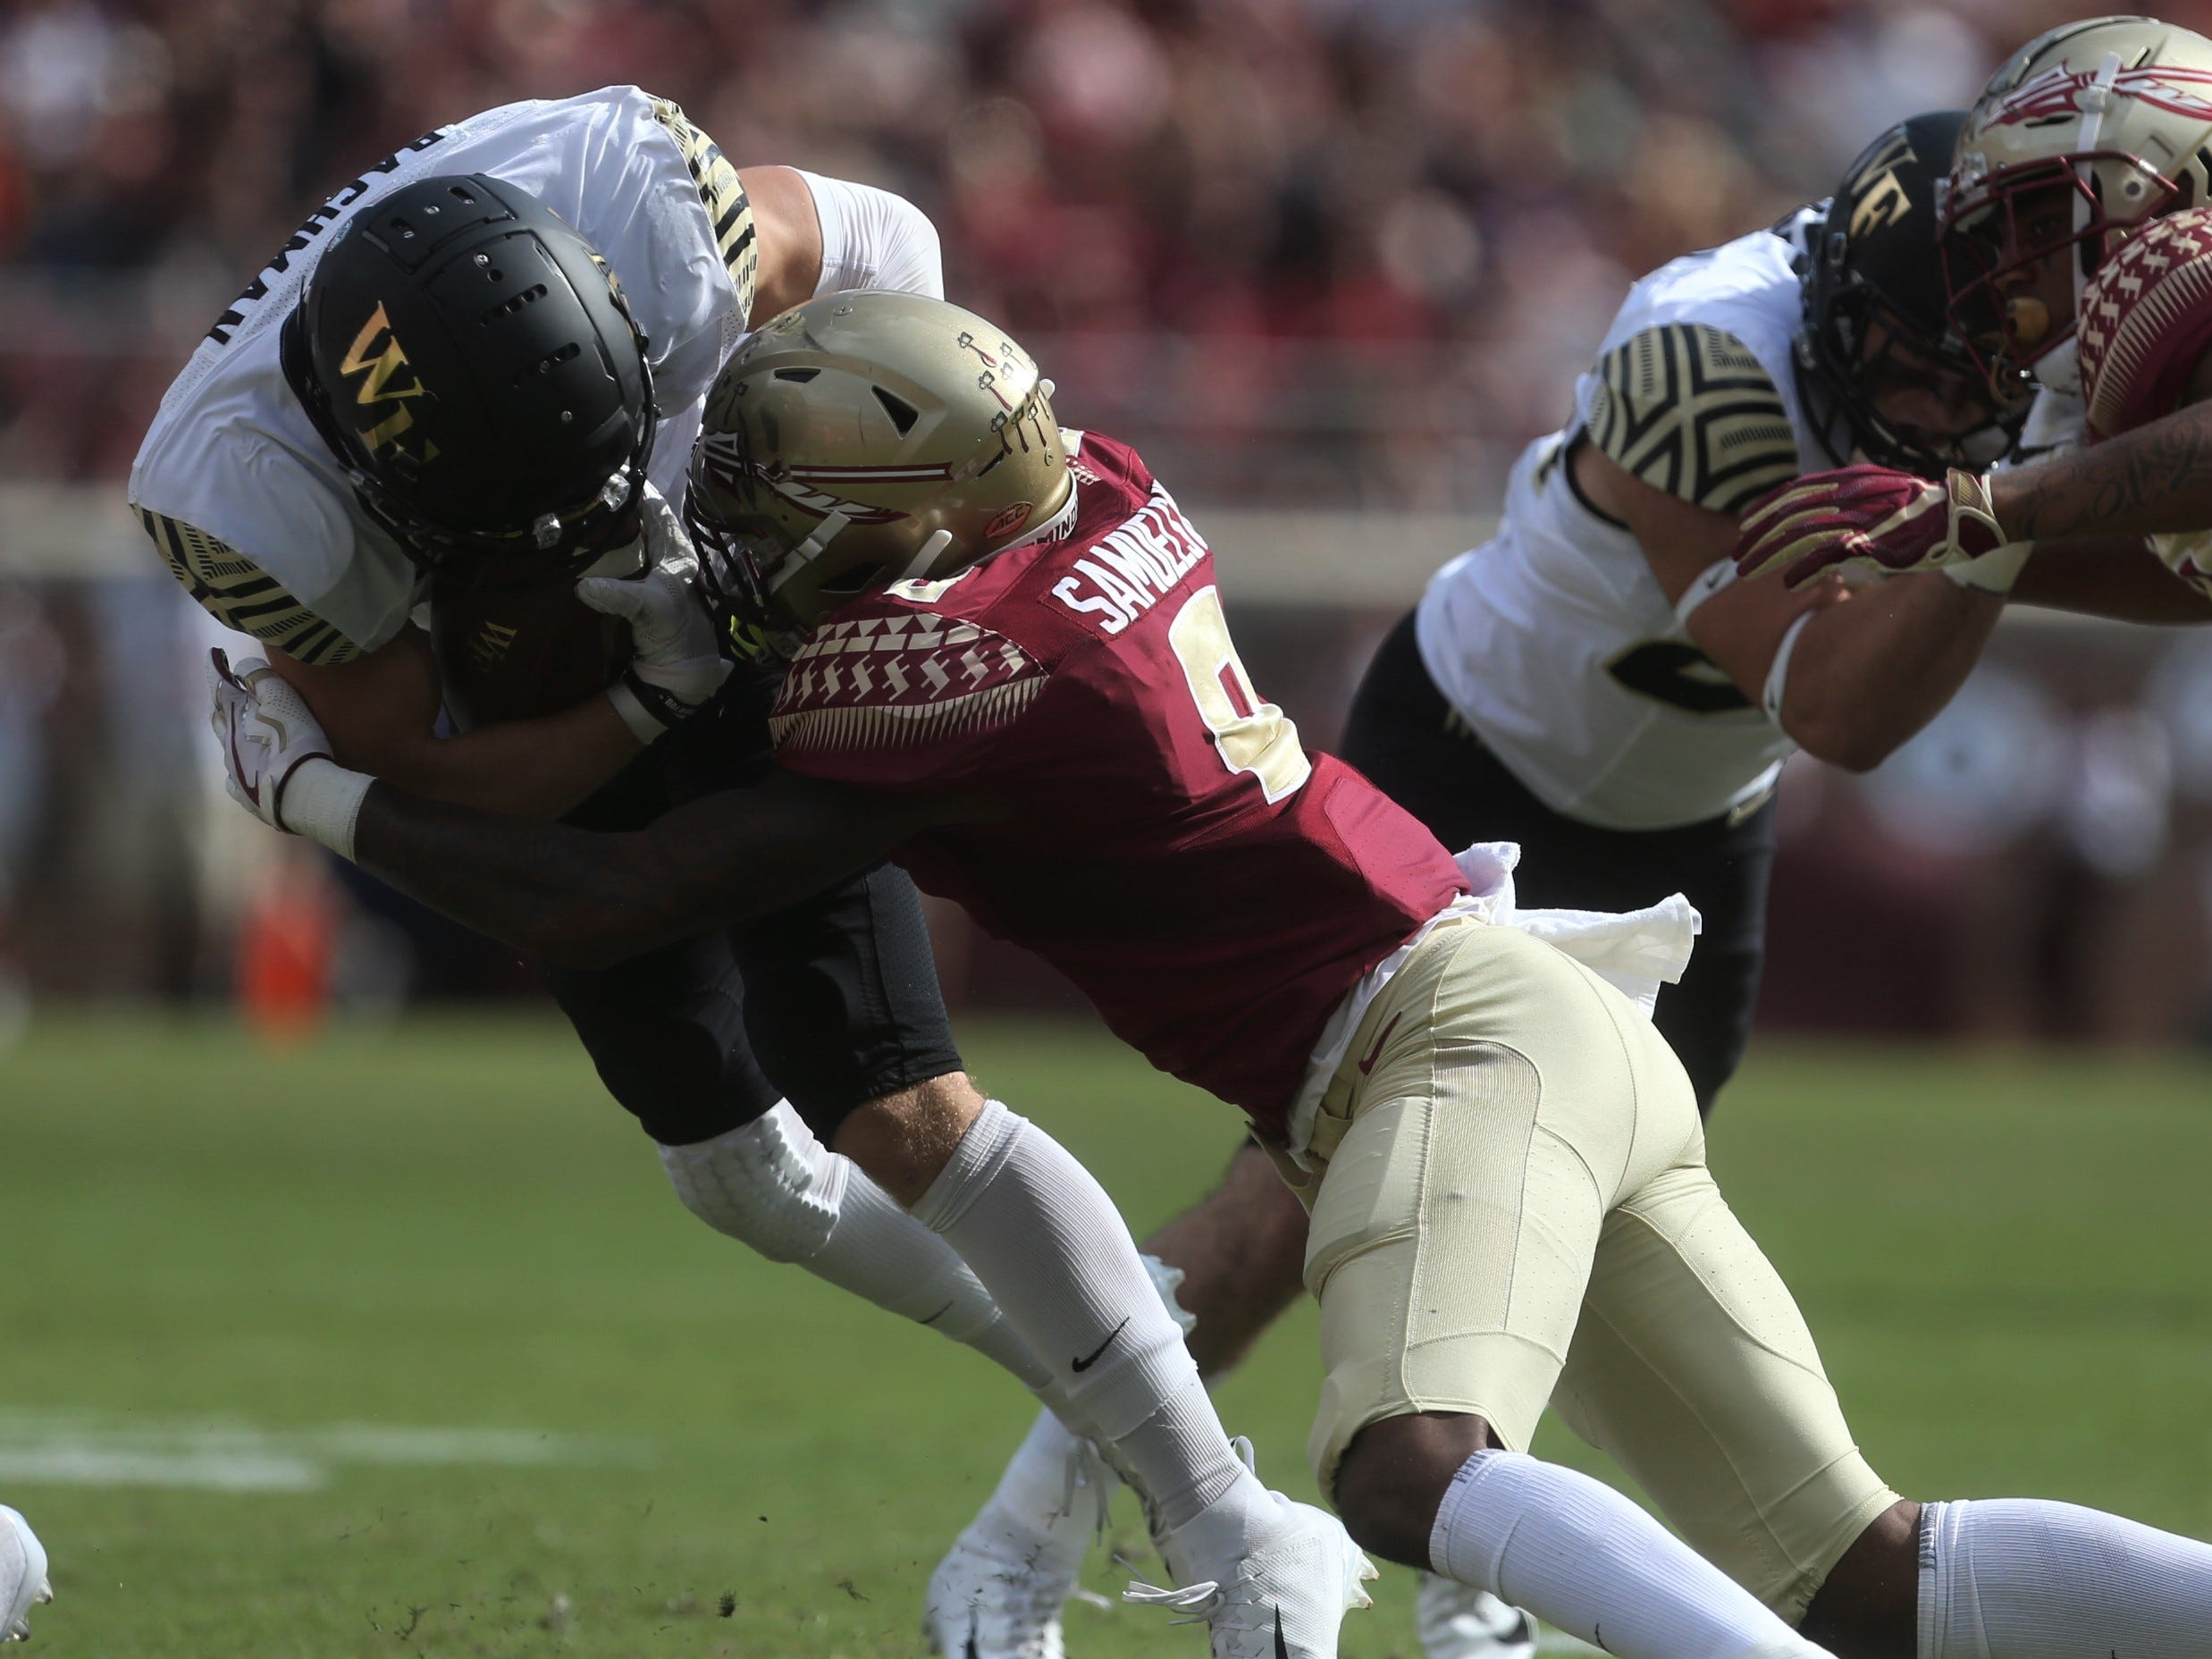 Florida State defensive back Stanford Samuels III levels a hit on Wake Forest receiver Alex Bachman during a game at Doak Campbell Stadium on Saturday, Oct. 20, 2018.